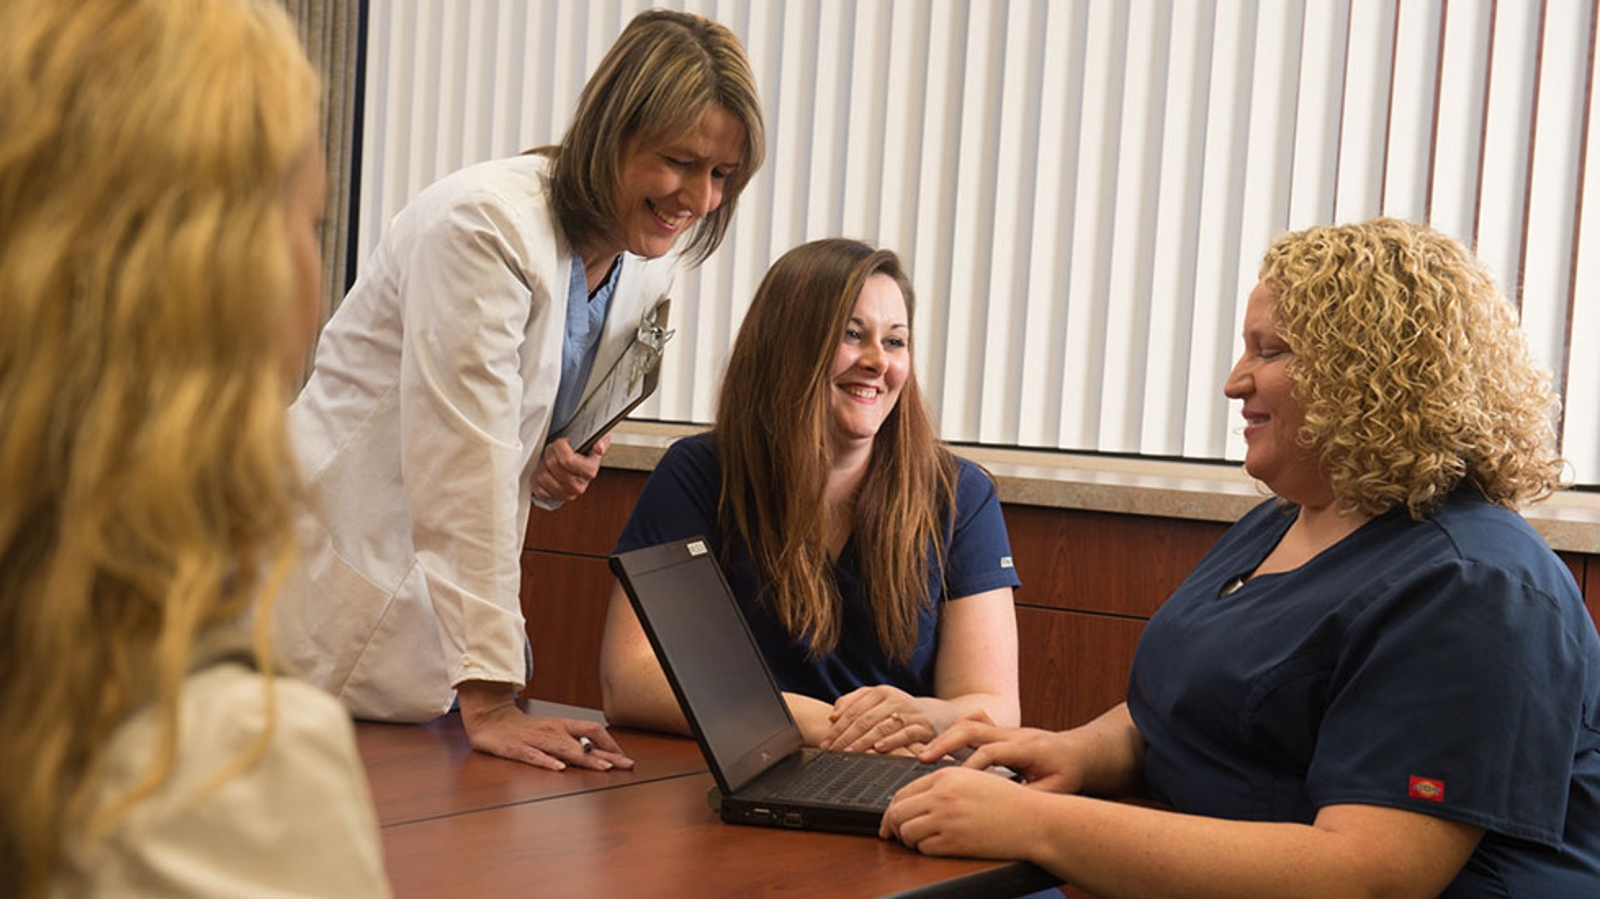 nurses smiling each other while looking at a laptop